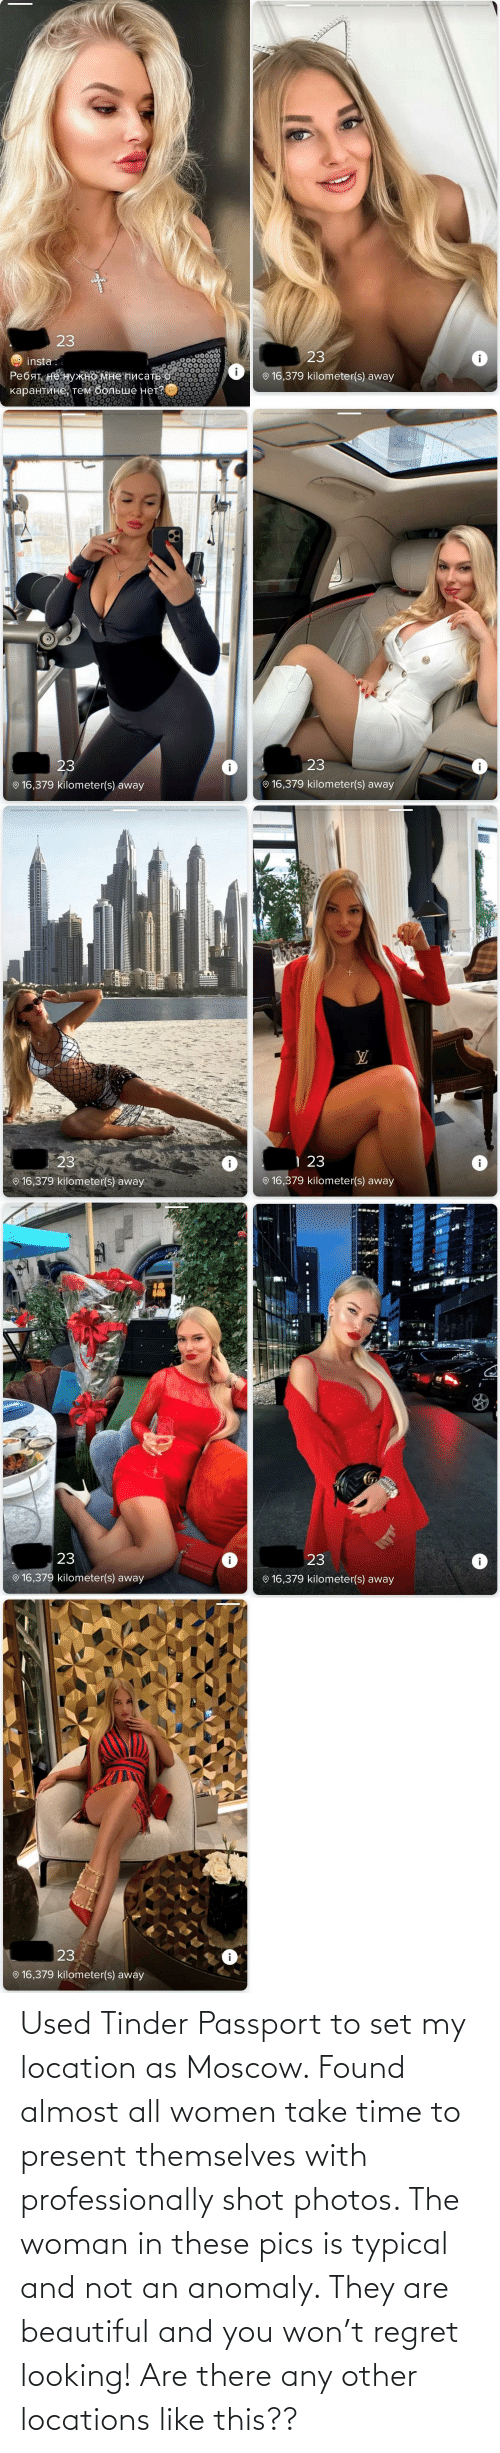 Locations: Used Tinder Passport to set my location as Moscow. Found almost all women take time to present themselves with professionally shot photos. The woman in these pics is typical and not an anomaly. They are beautiful and you won't regret looking! Are there any other locations like this??